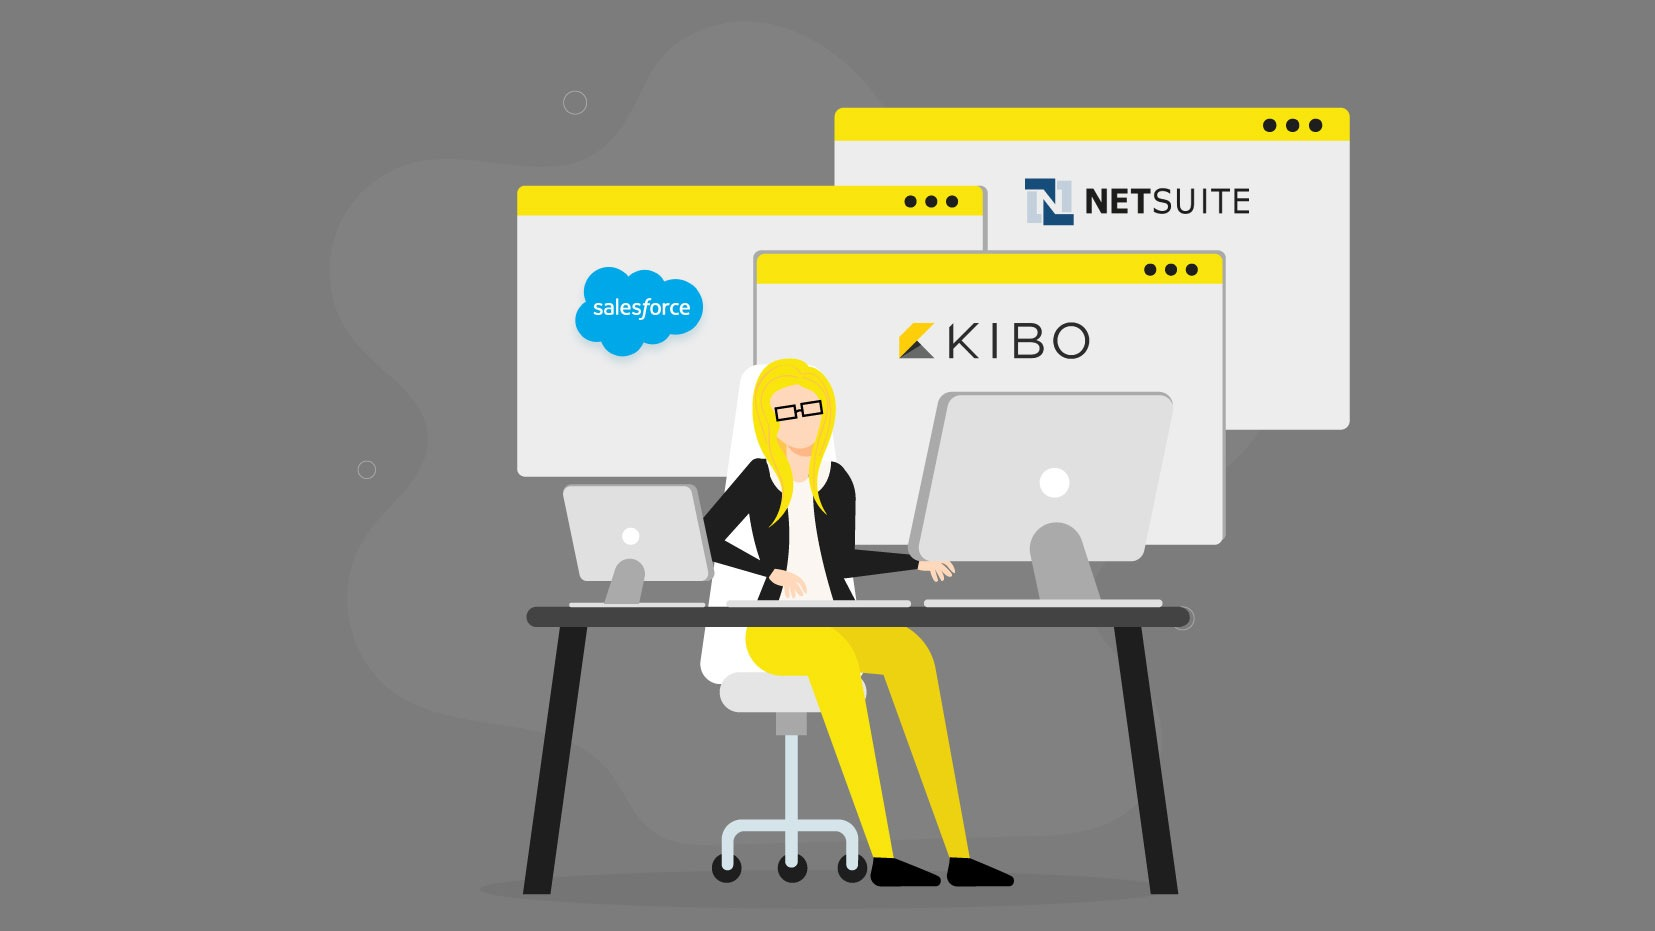 Three System Shootout: The Order Management Systems of Netsuite, Kibo, and Lightning